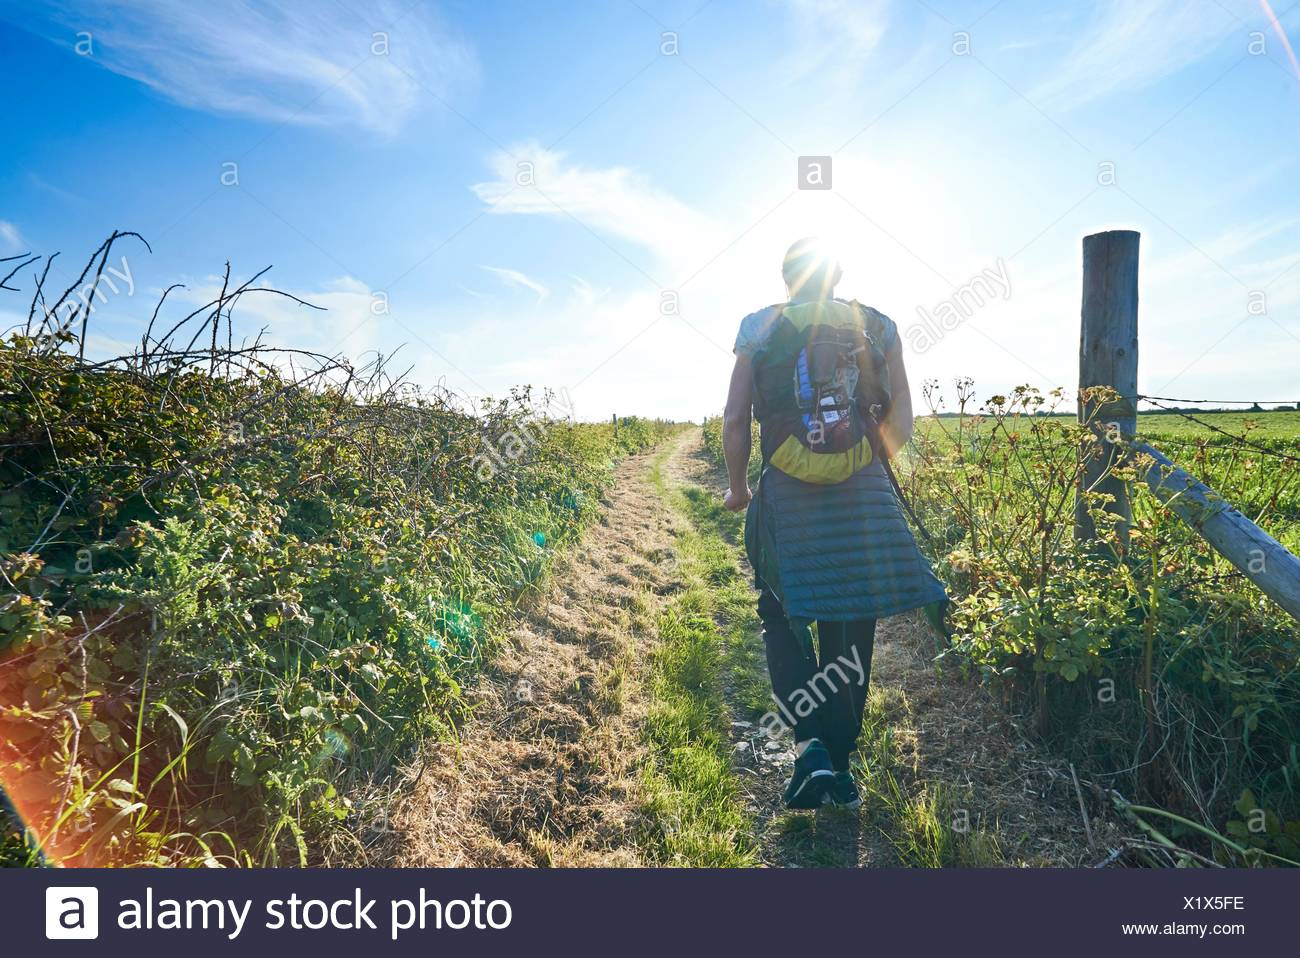 Rear view of hiker with backpack hiking on path in field - Stock Image